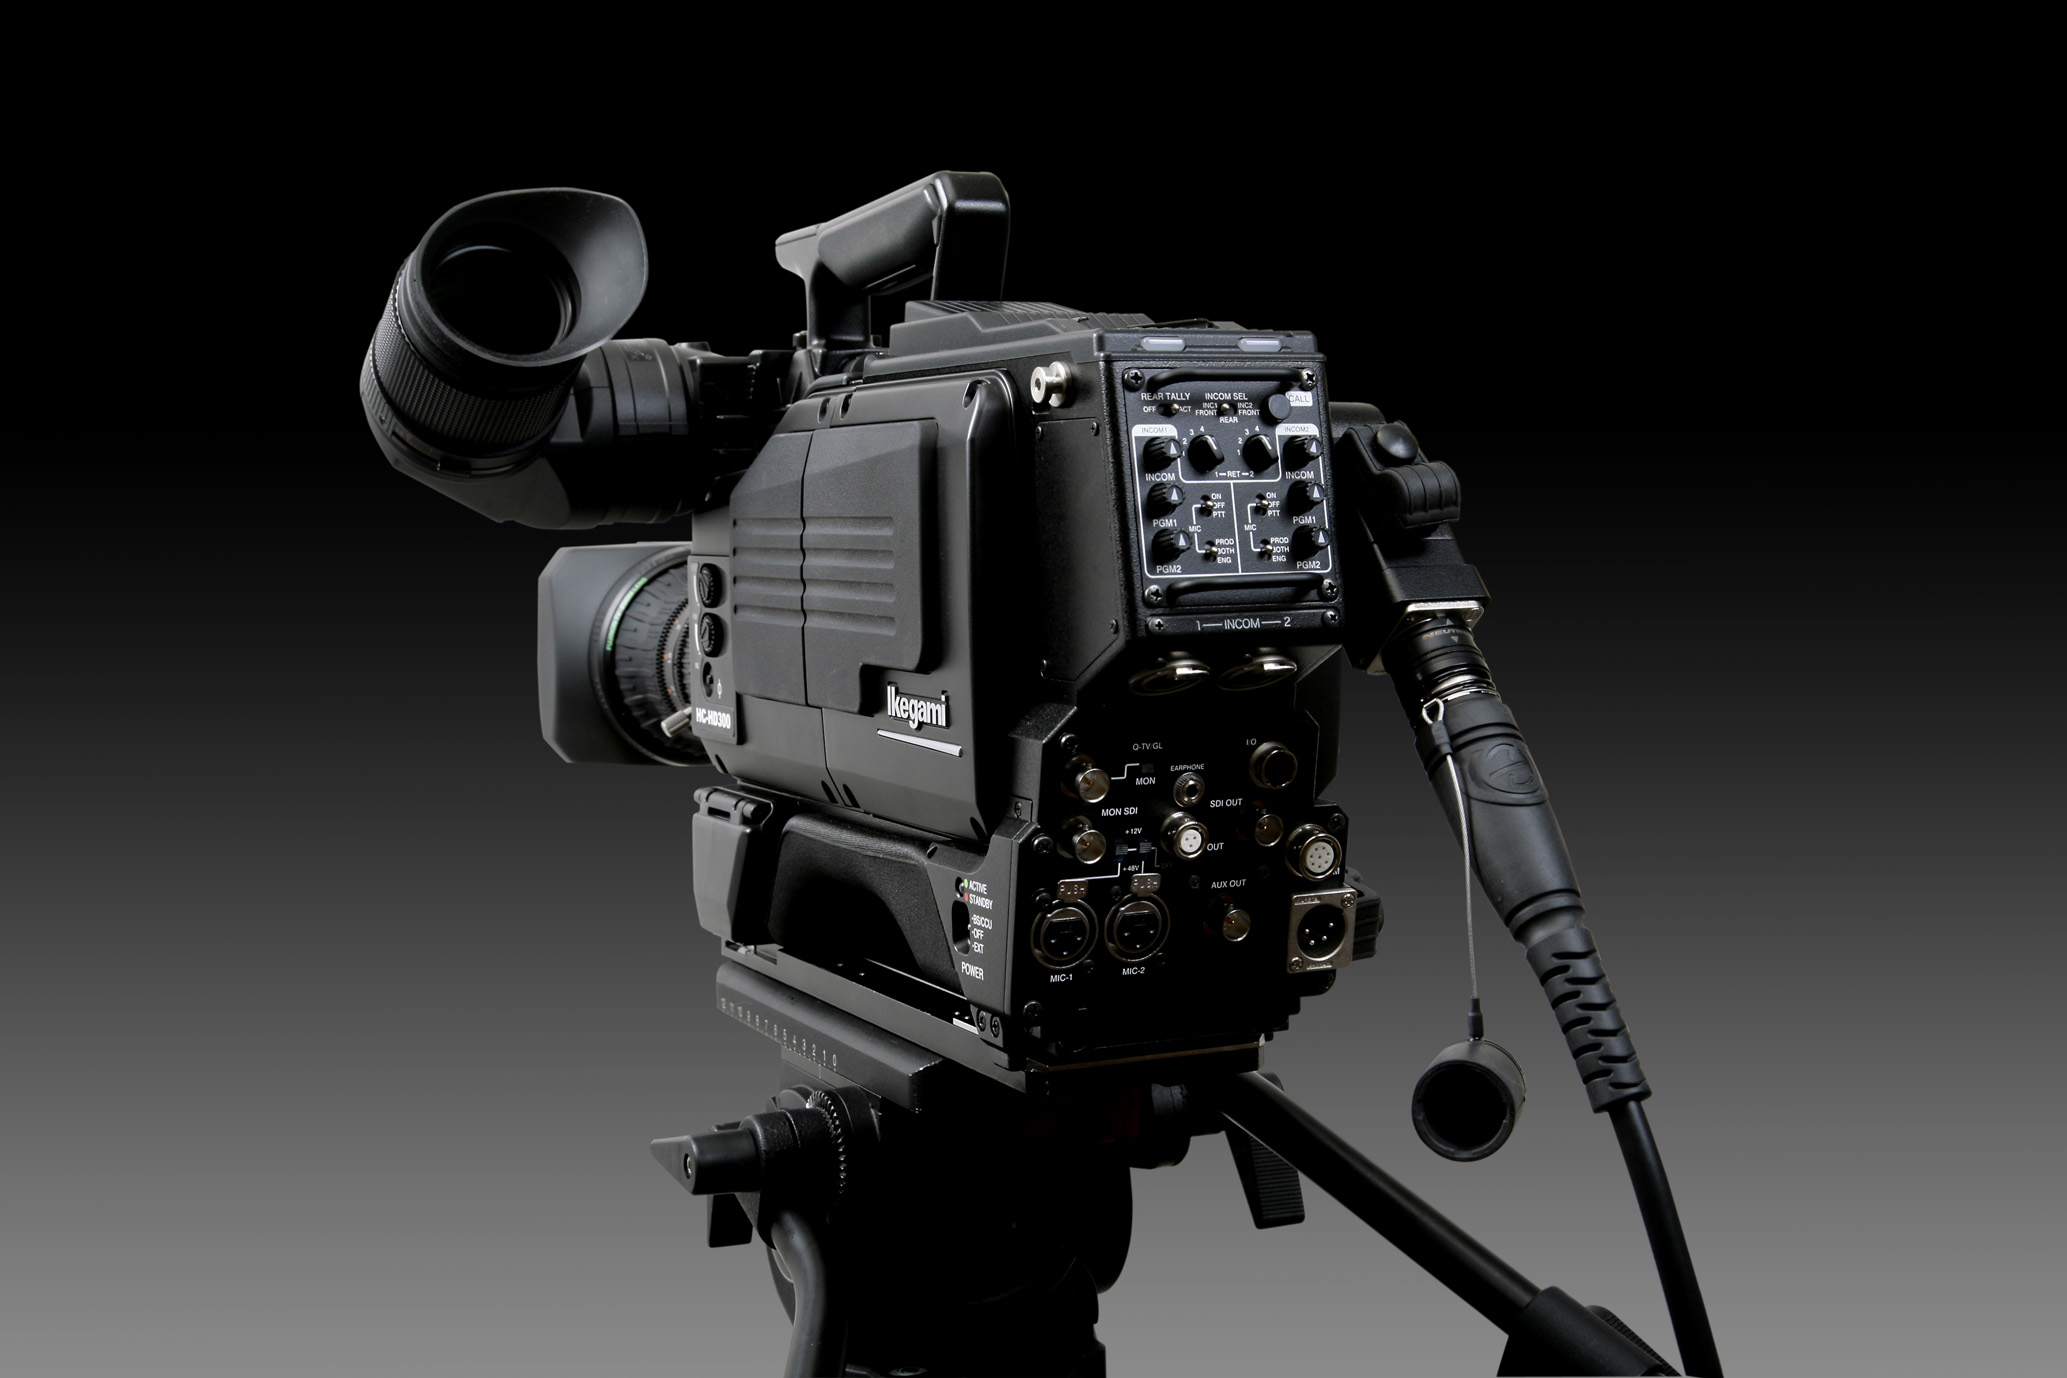 Ikegami HC-HD300 camera rear